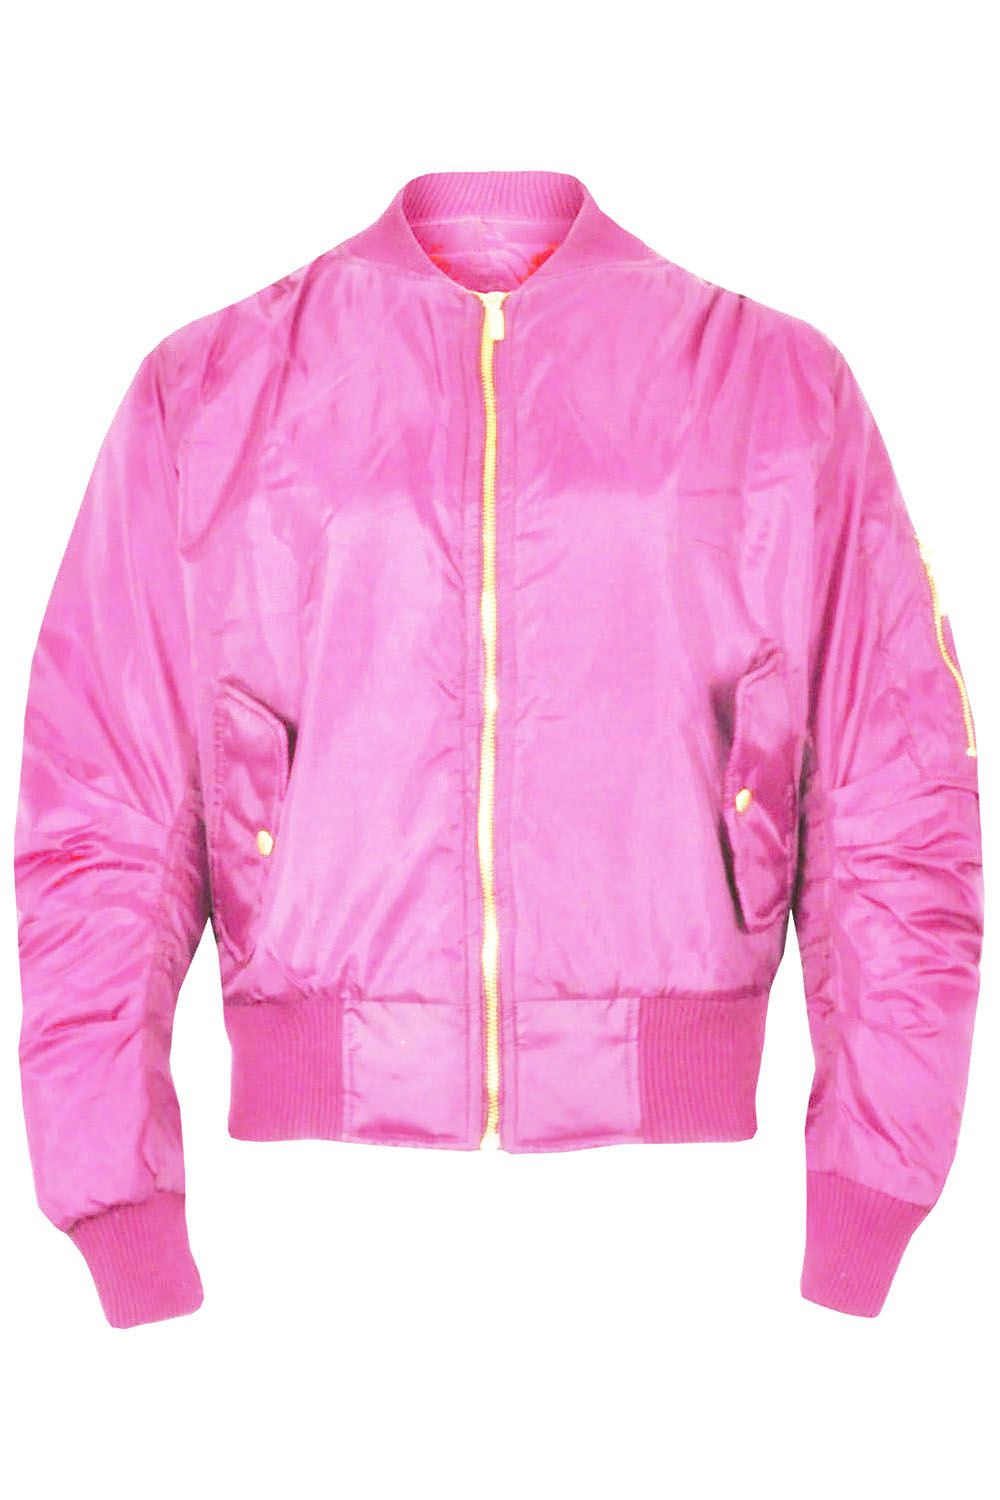 Free shipping on girls' coats, jackets and outerwear for toddlers, little girls and big girls at funon.ml Totally free shipping and returns. Skip navigation Give a little wow.